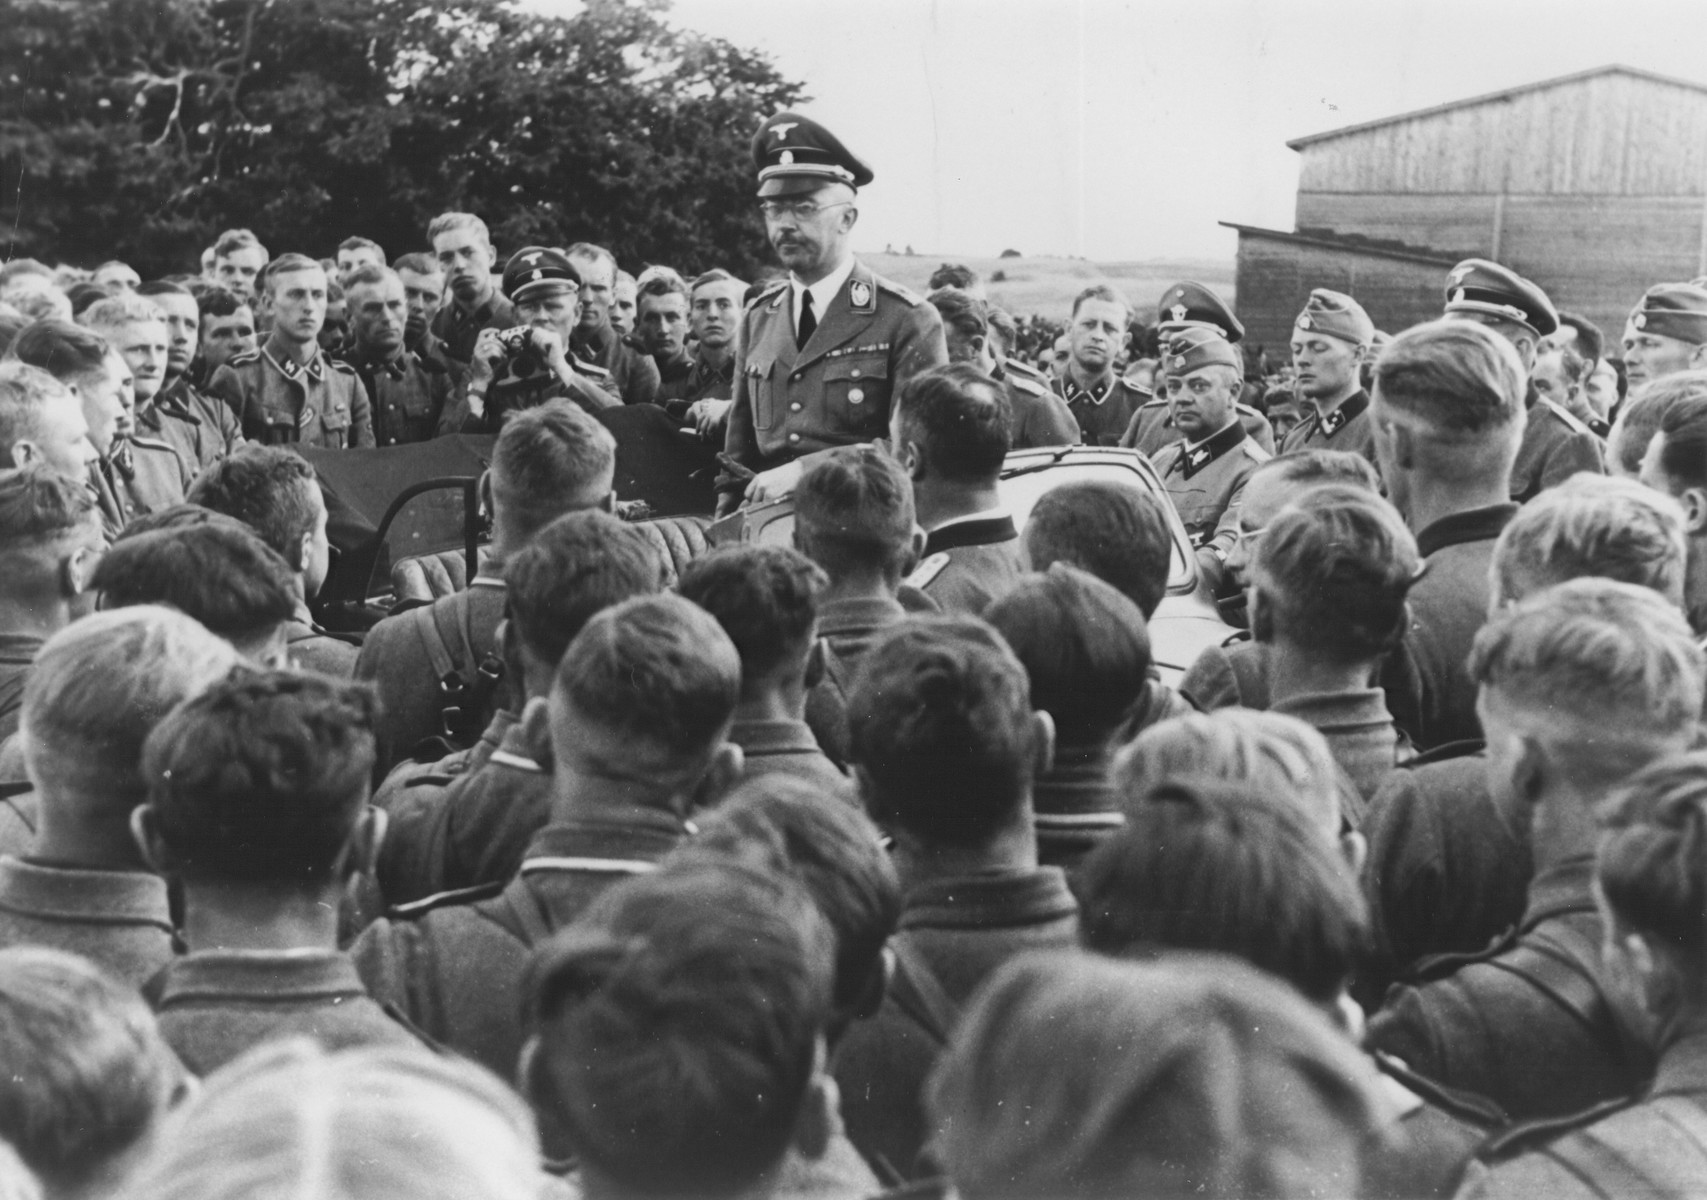 Reichsfuehrer-SS Heinrich Himmler addresses a group of soldiers in a cavalry regiment of the Waffen SS in the eastern territories.  Among those pictured are Kurt Knoblauch (standing near car) and Himmler's boyguard, Josef Kiermaier (holding binoculars).